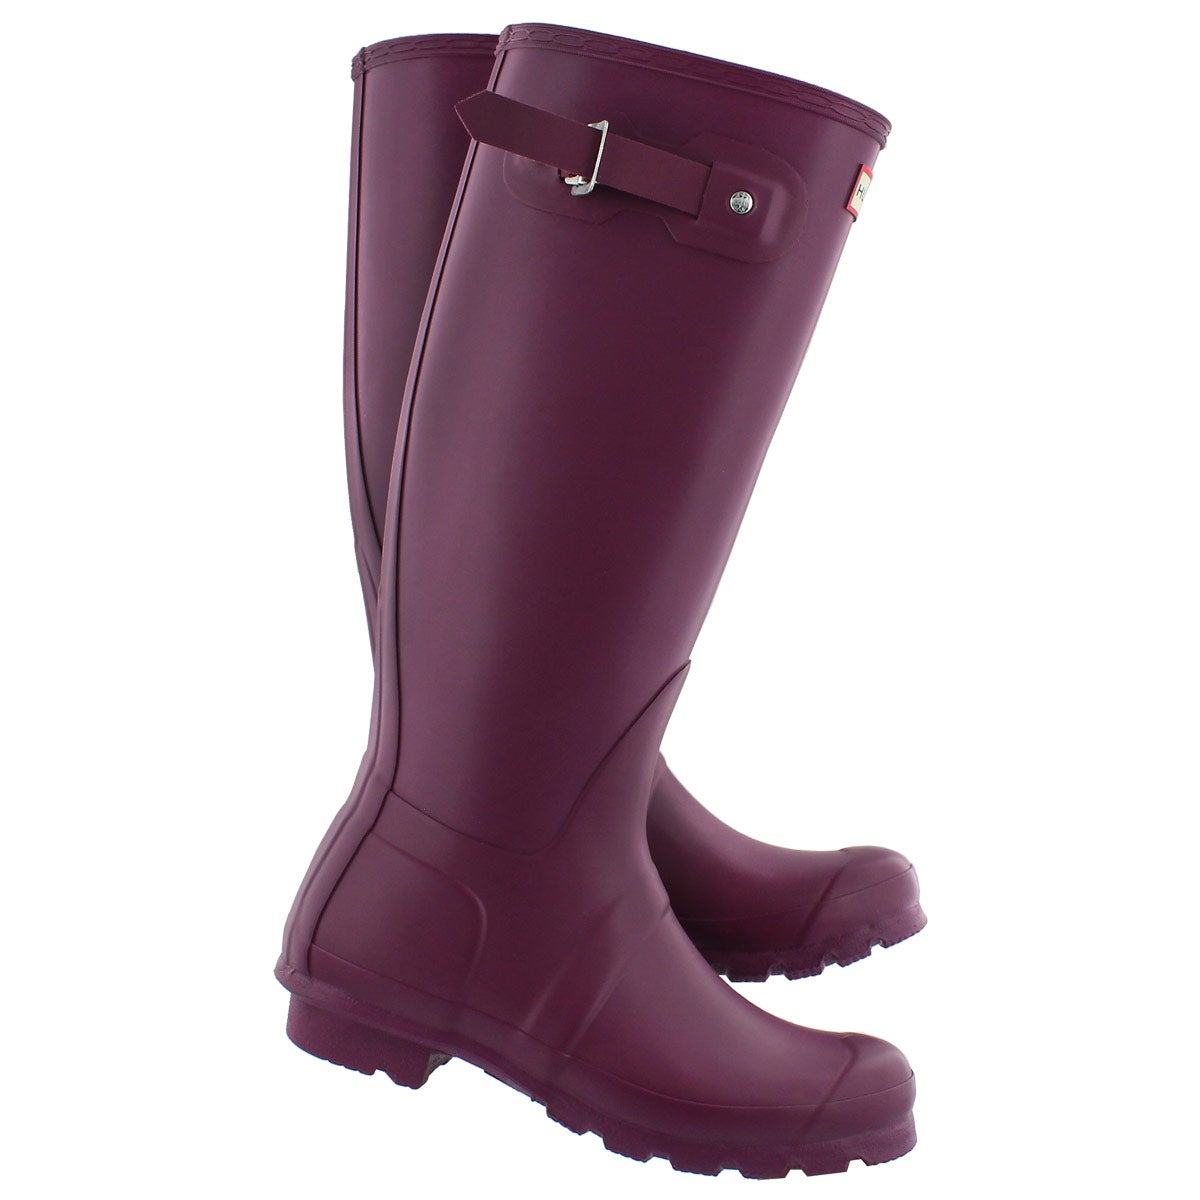 Elegant Hunter Original Tall Gloss Rain Boot For Women  Wwwteexecom